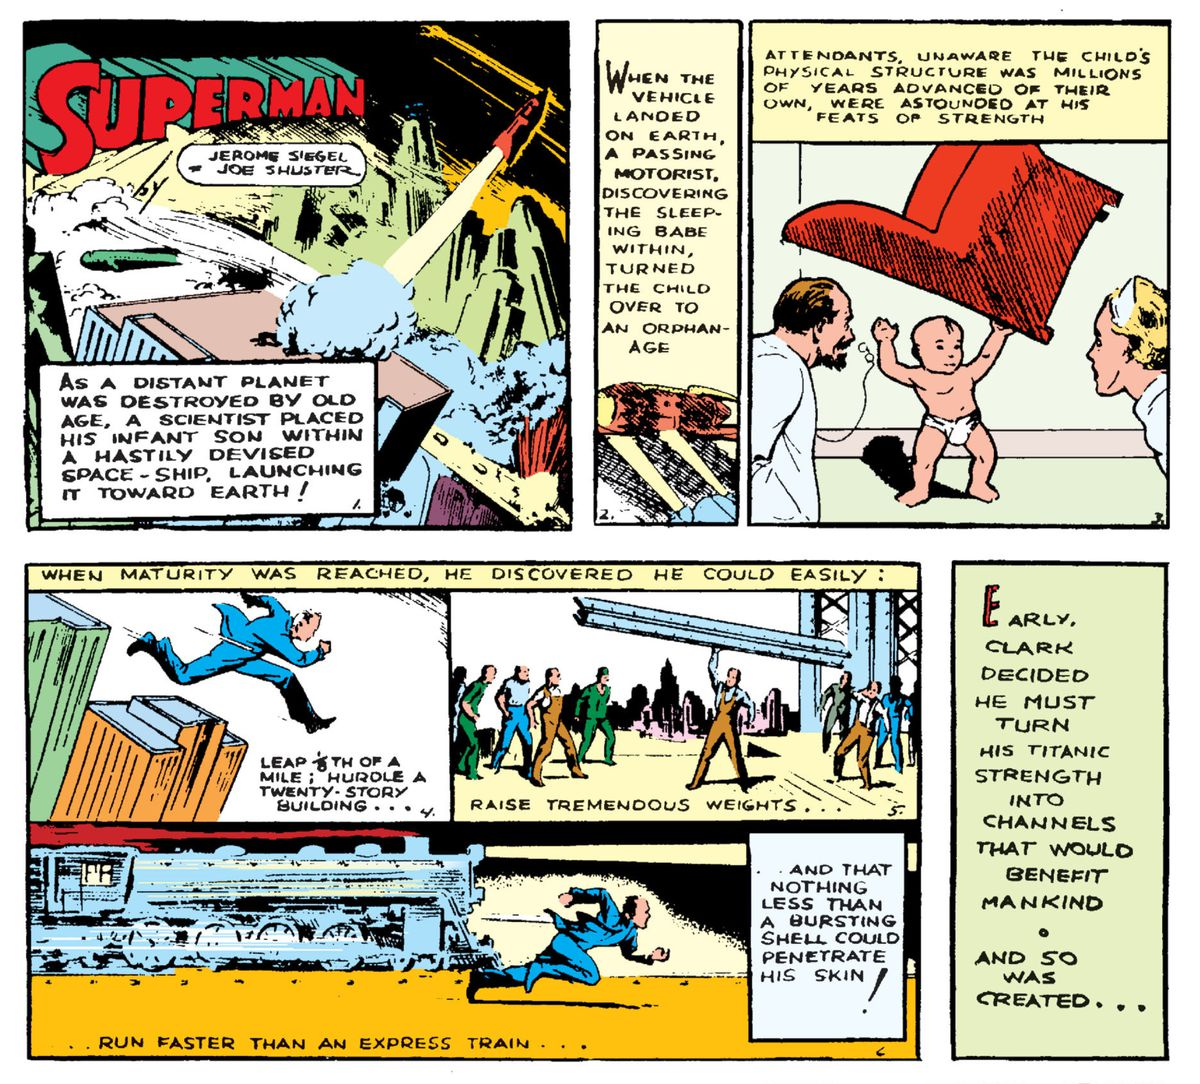 Superman's original origin story, as shown in Action Comics #1, DC Comics (1938).